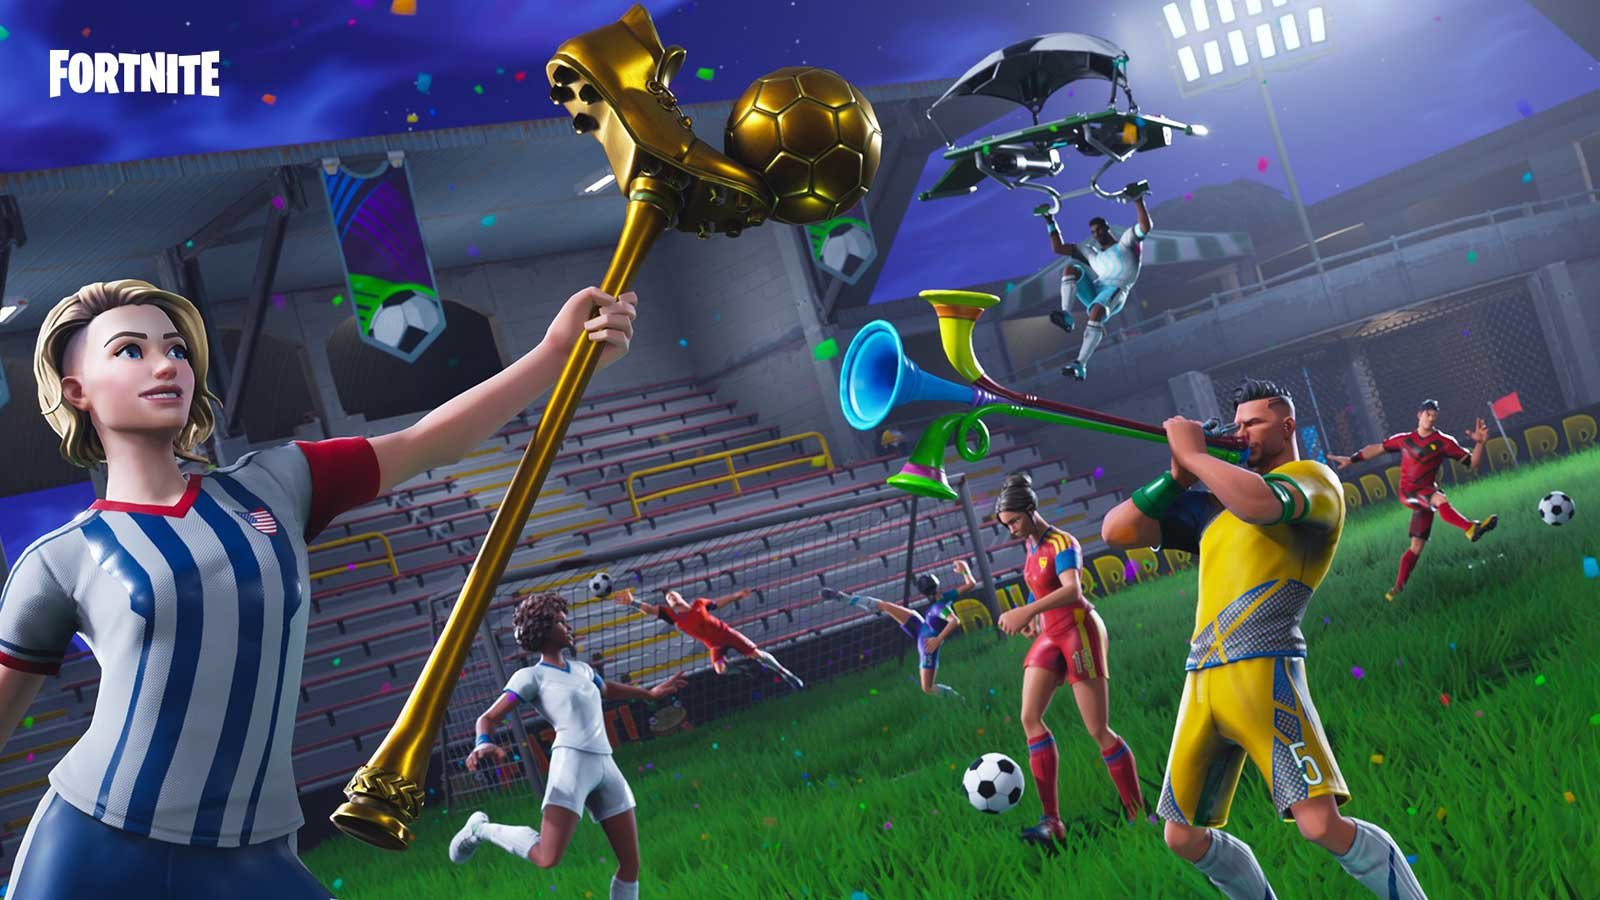 Fortnite World Cup in esports